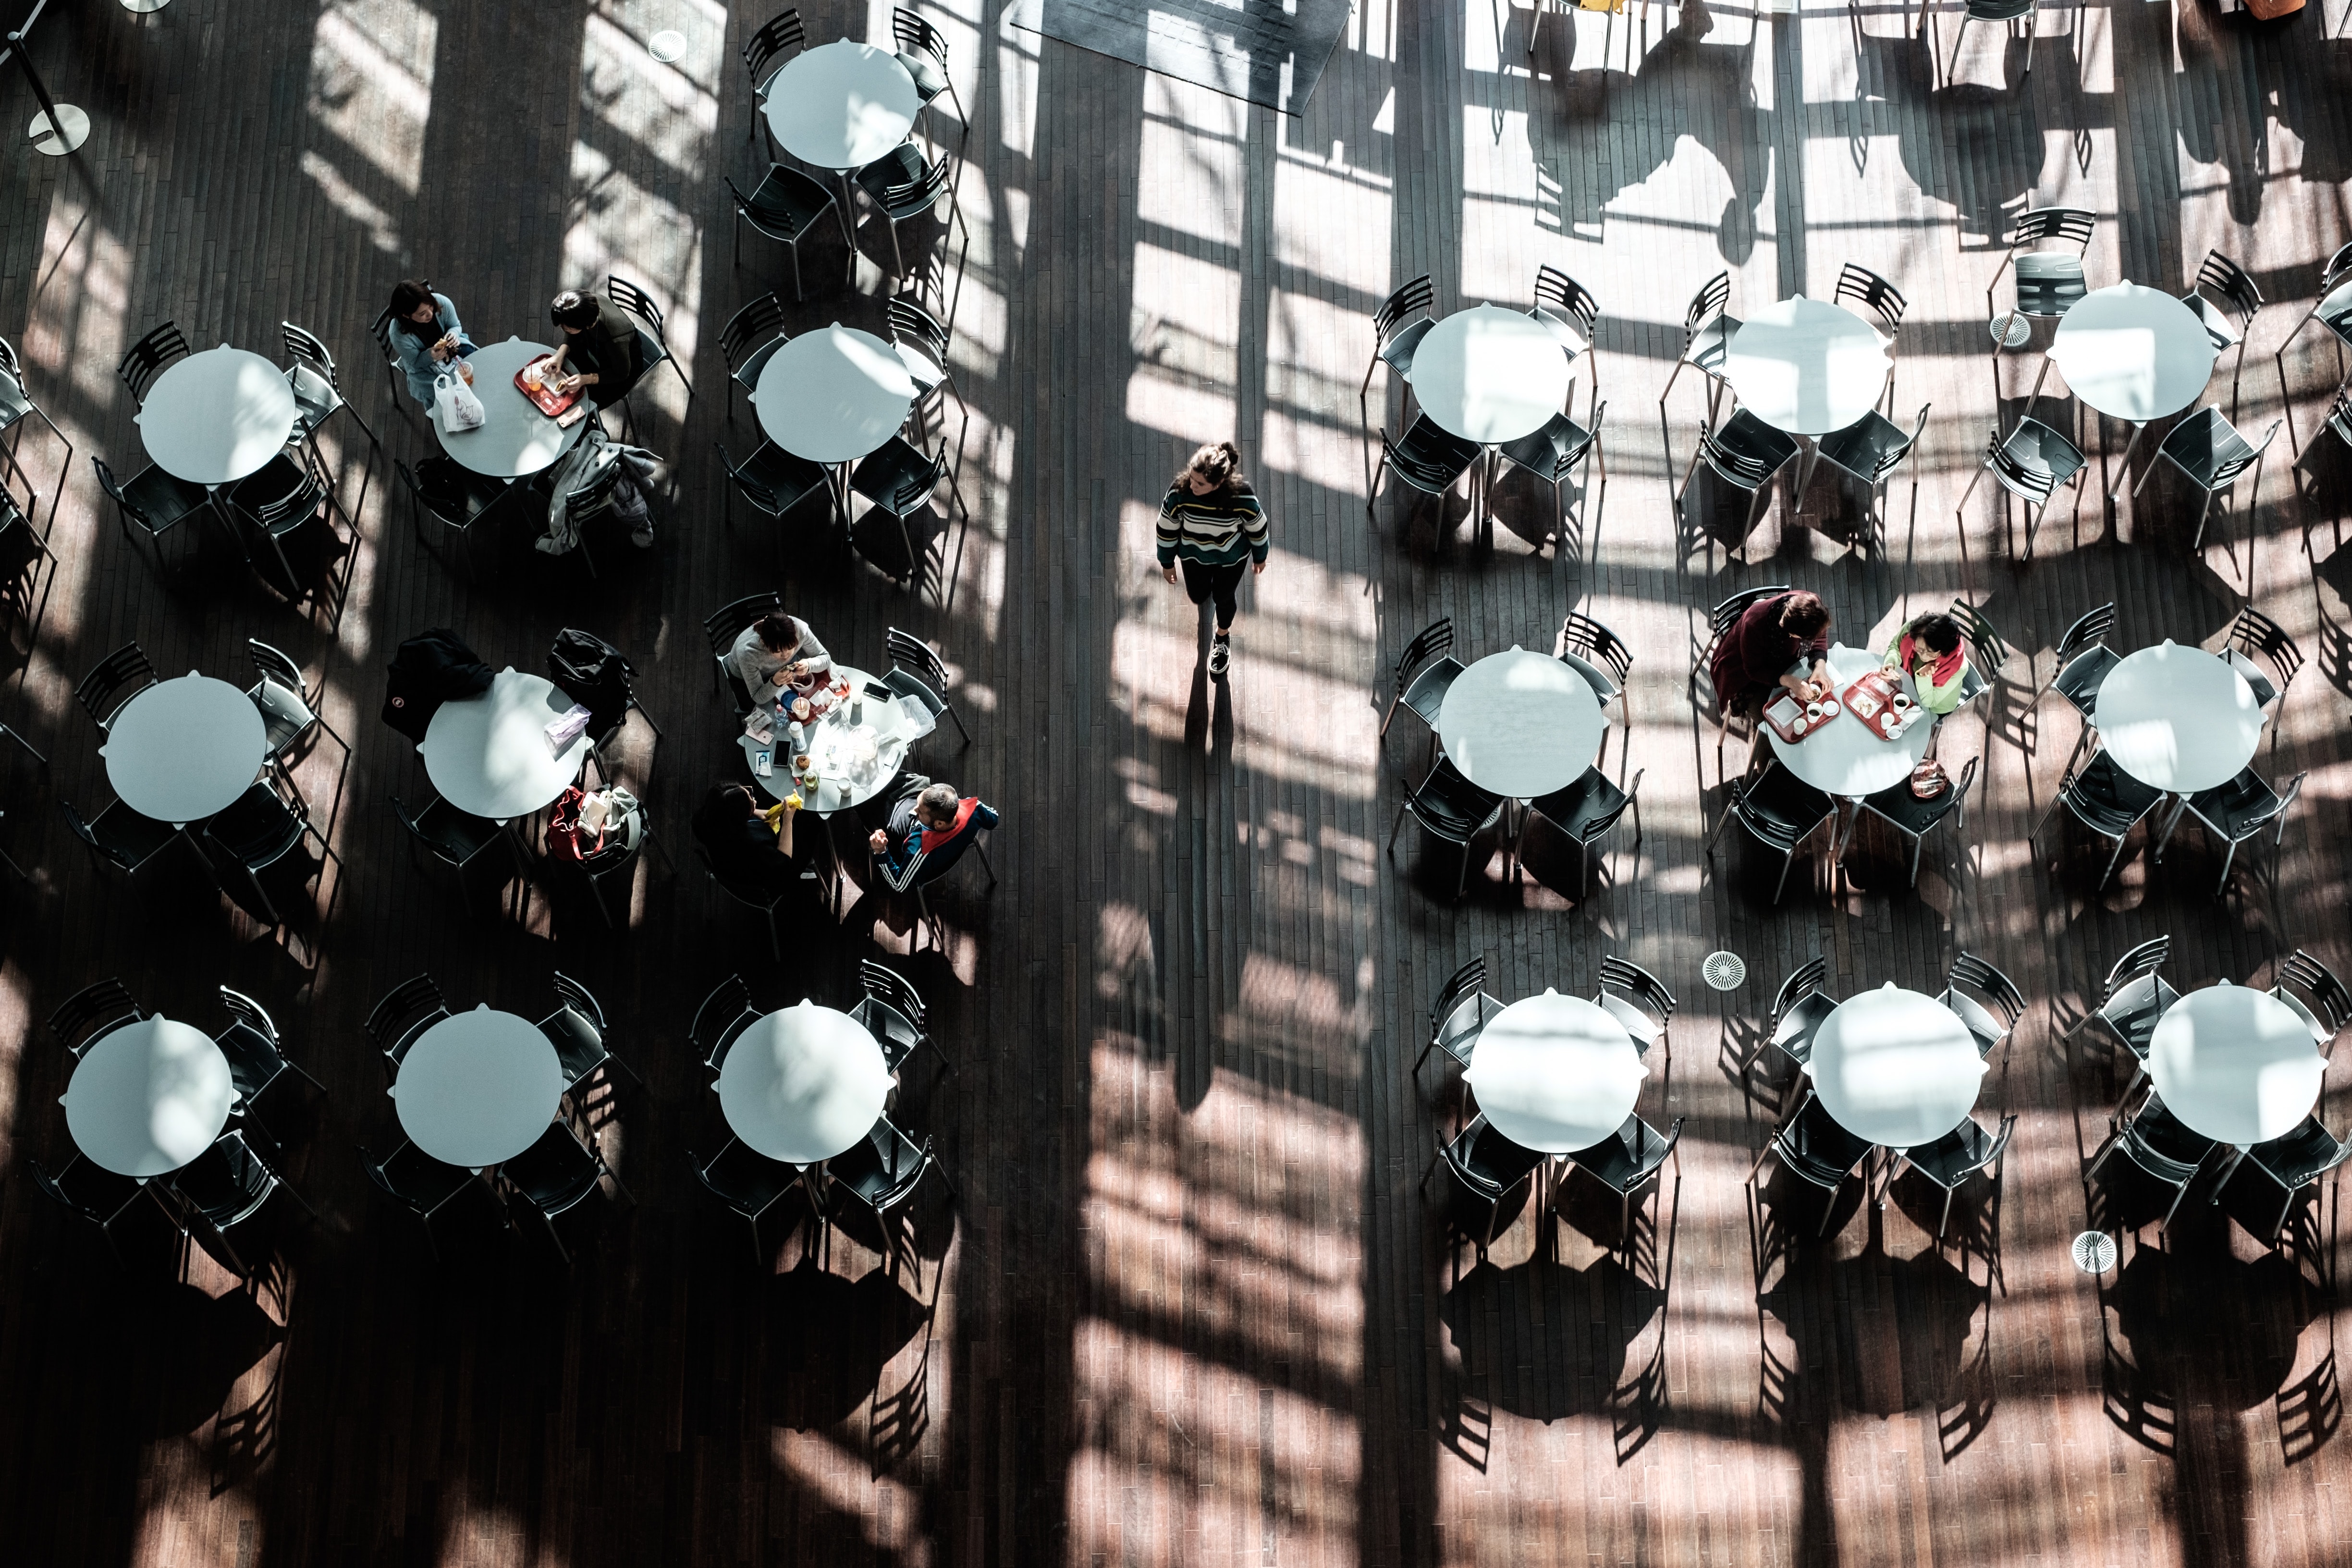 Drone view of people eating at white circular tables with the window casting shadows